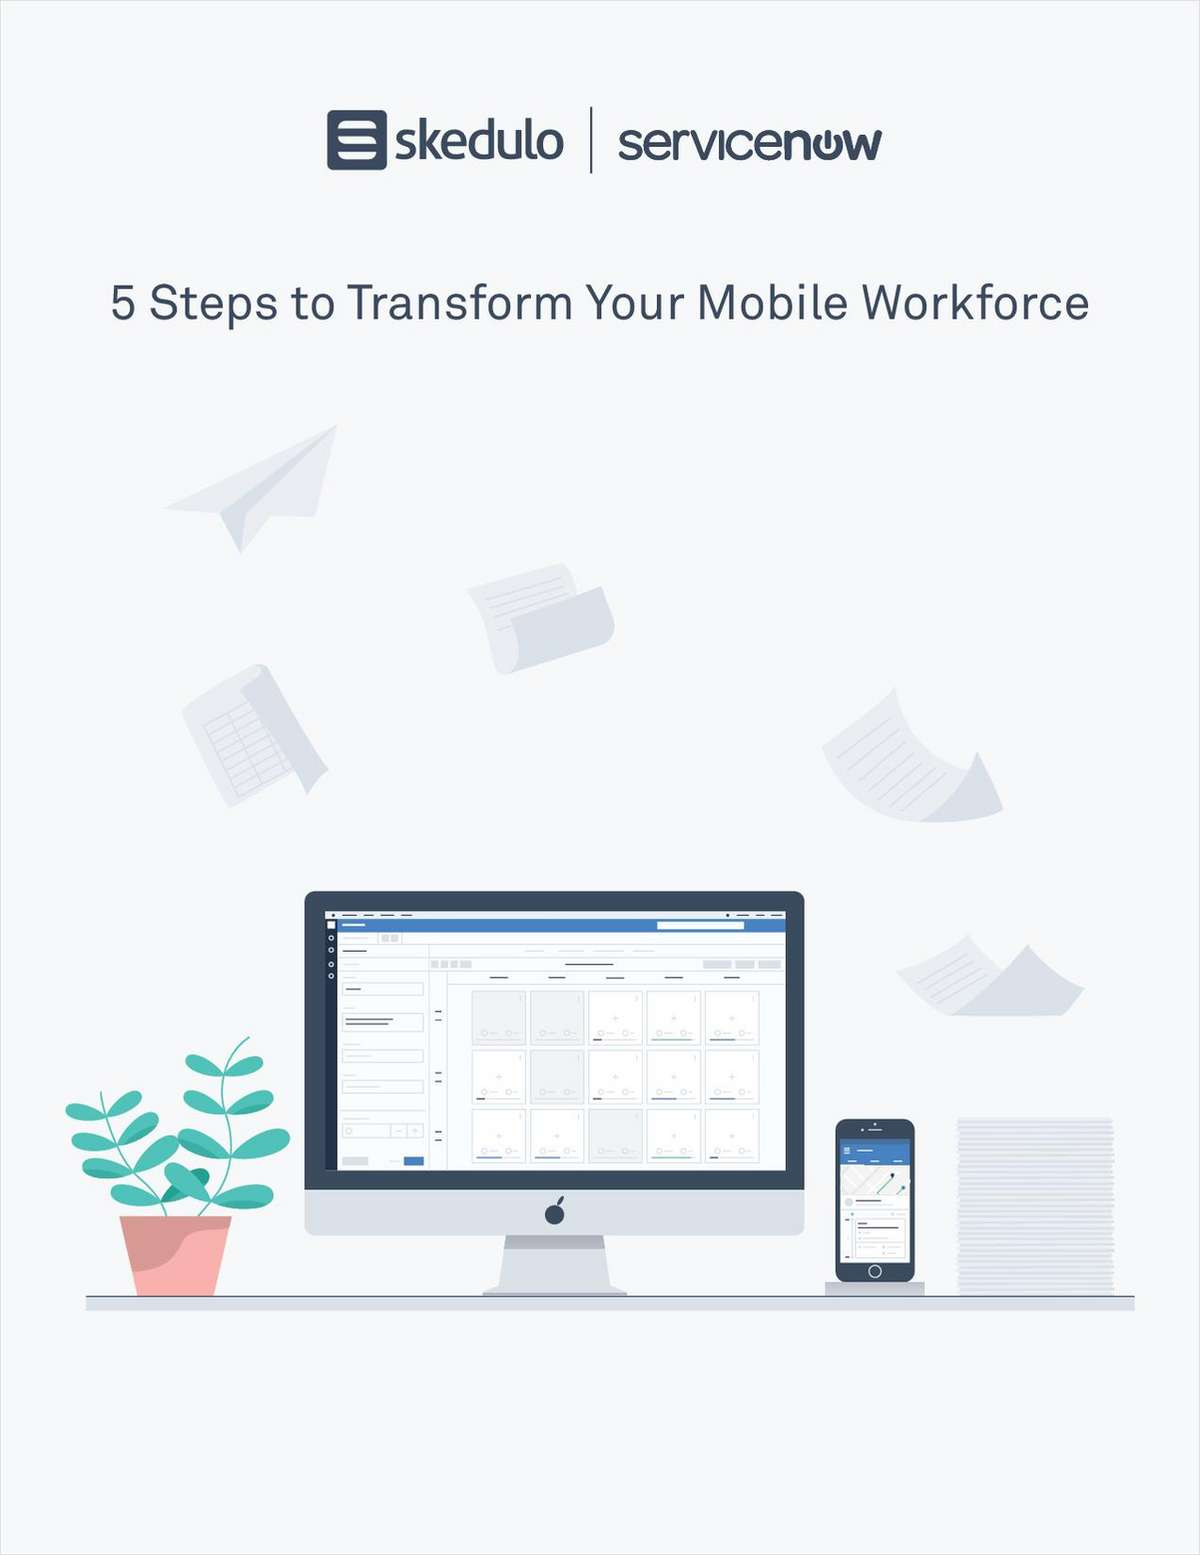 5 Steps to Transform Your Mobile Workforce